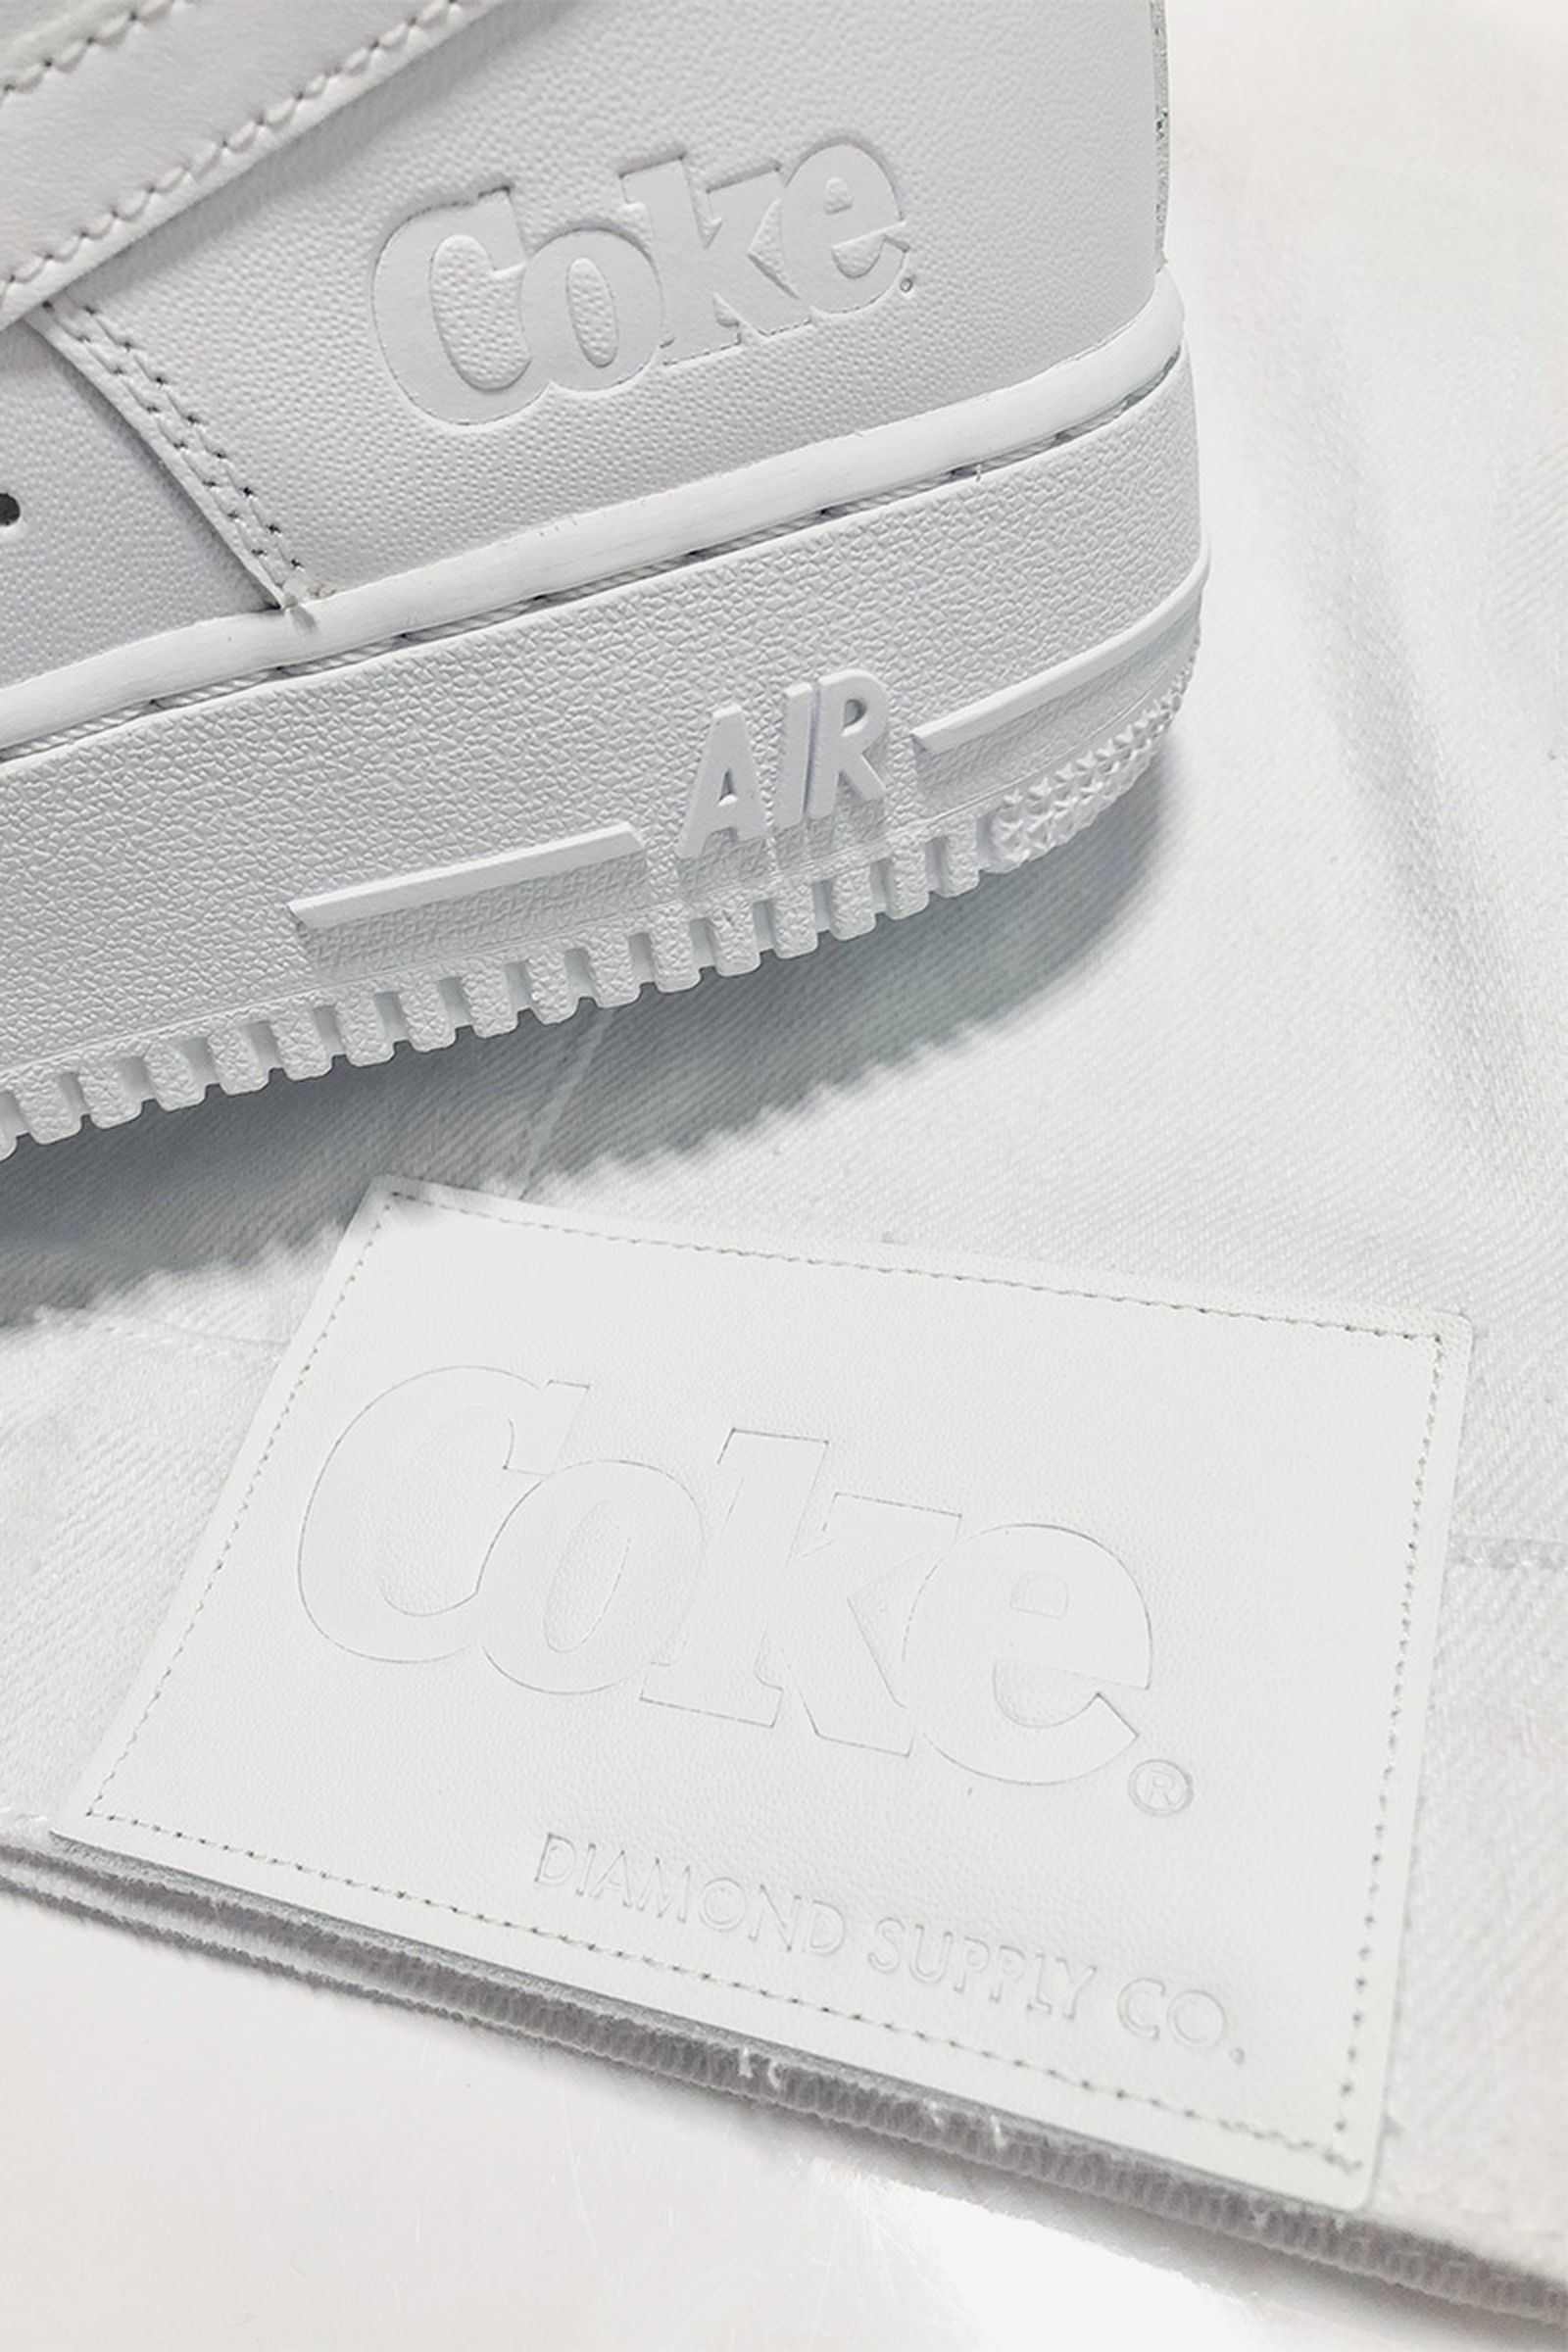 diamond supply co coca cola collection Nike air force 1